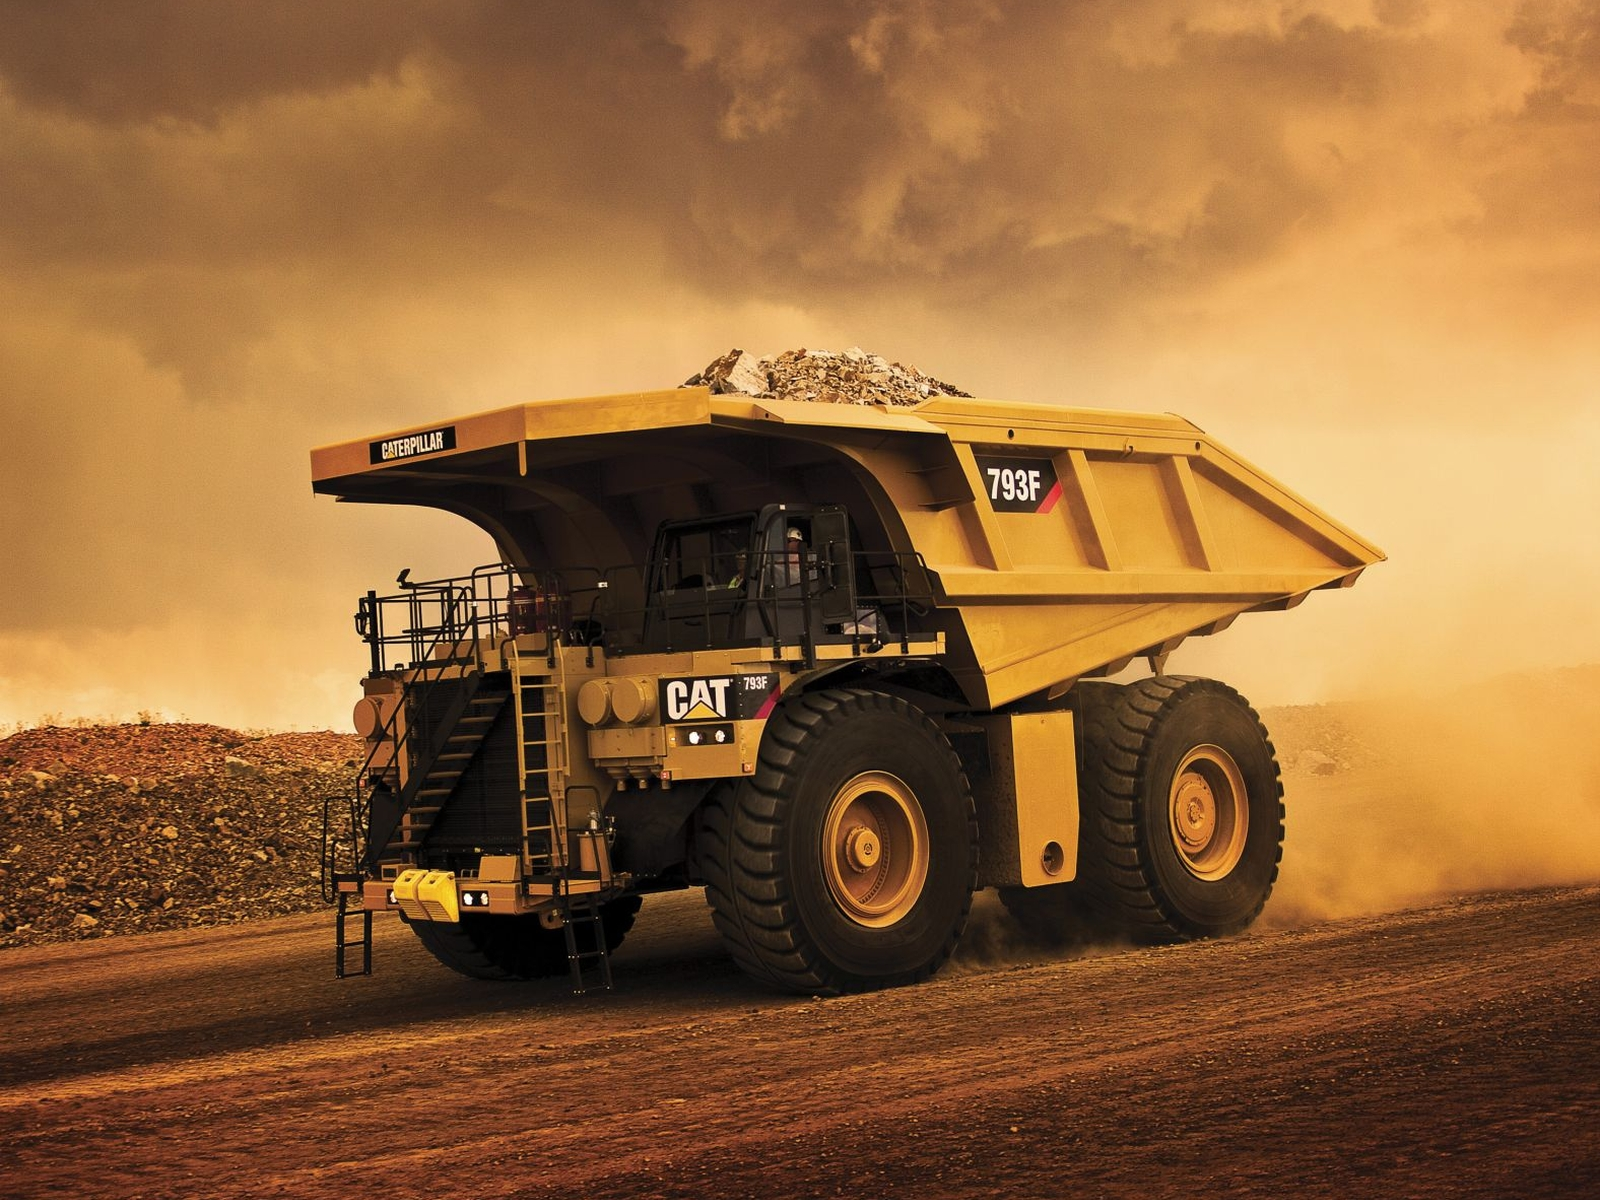 Caterpillar 793F dumptruck construction f wallpaper background 1600x1200